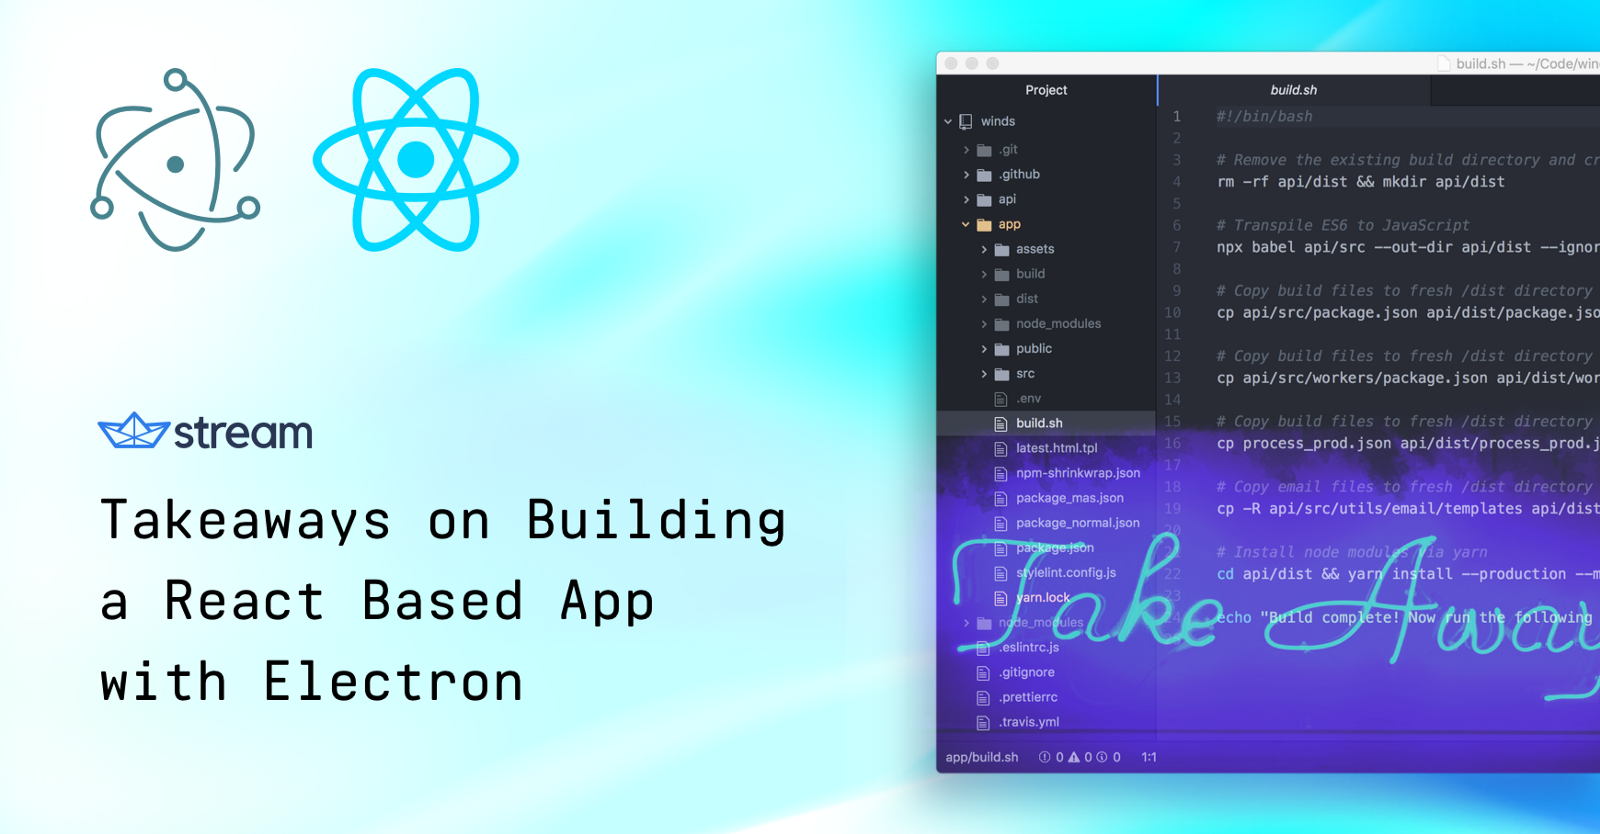 Takeaways on Building a React Based App with Electron - By